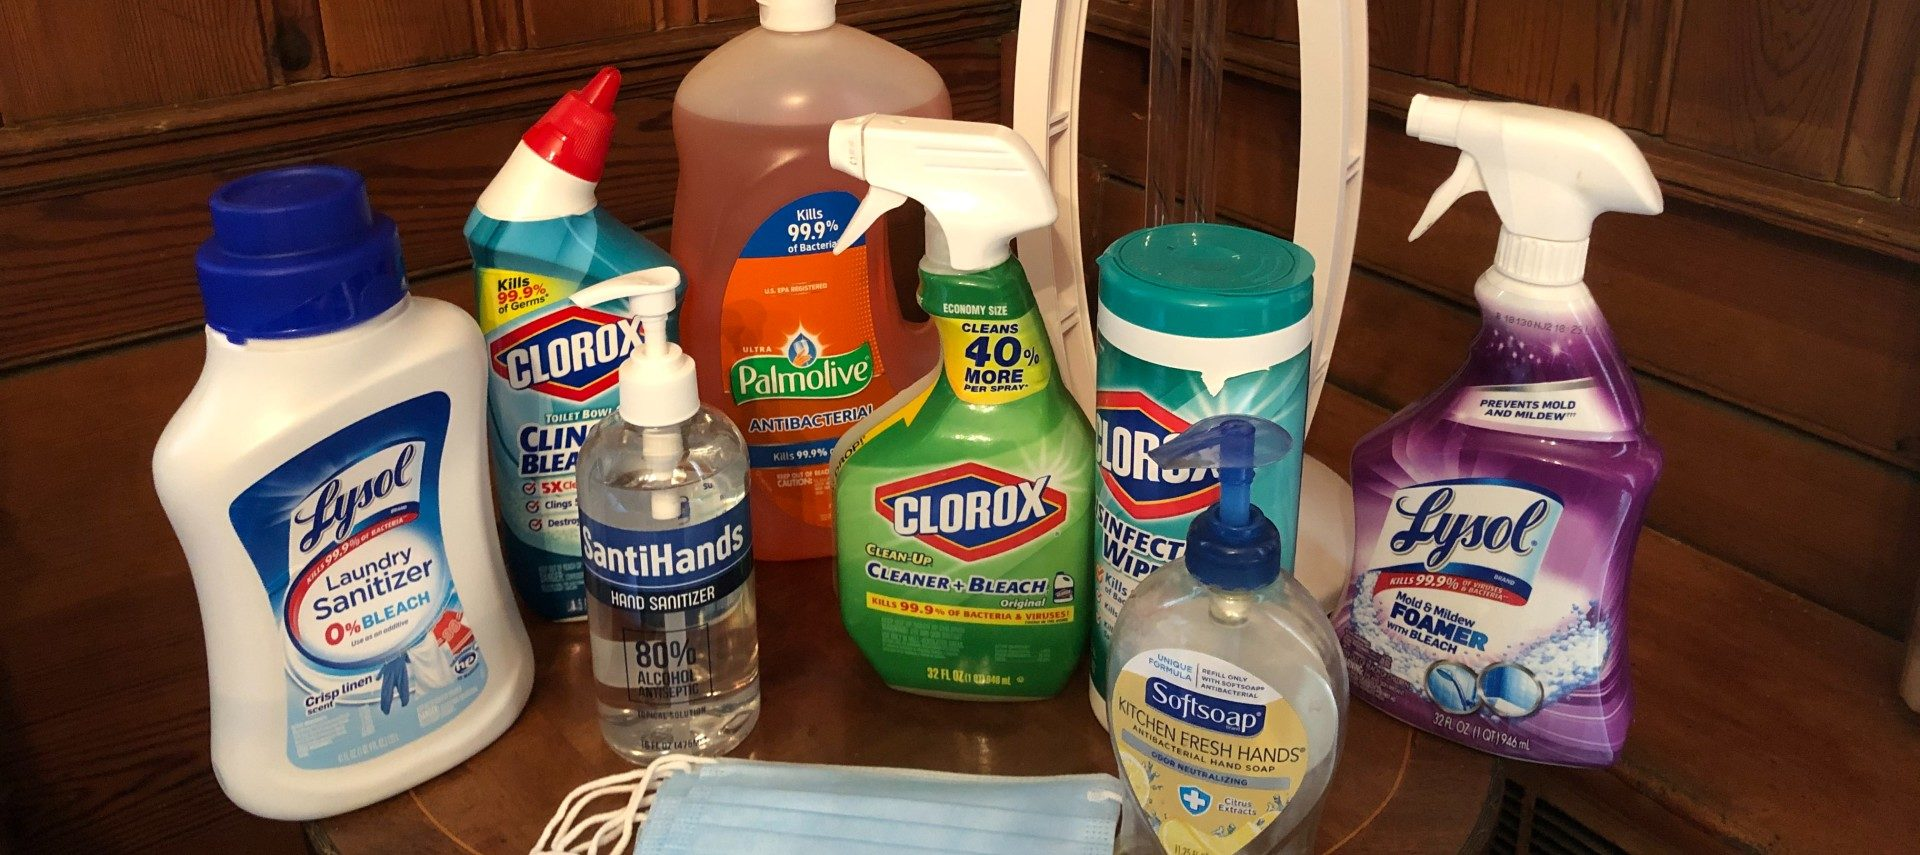 A variety of cleaning products, hand soap and face masks on a brown table